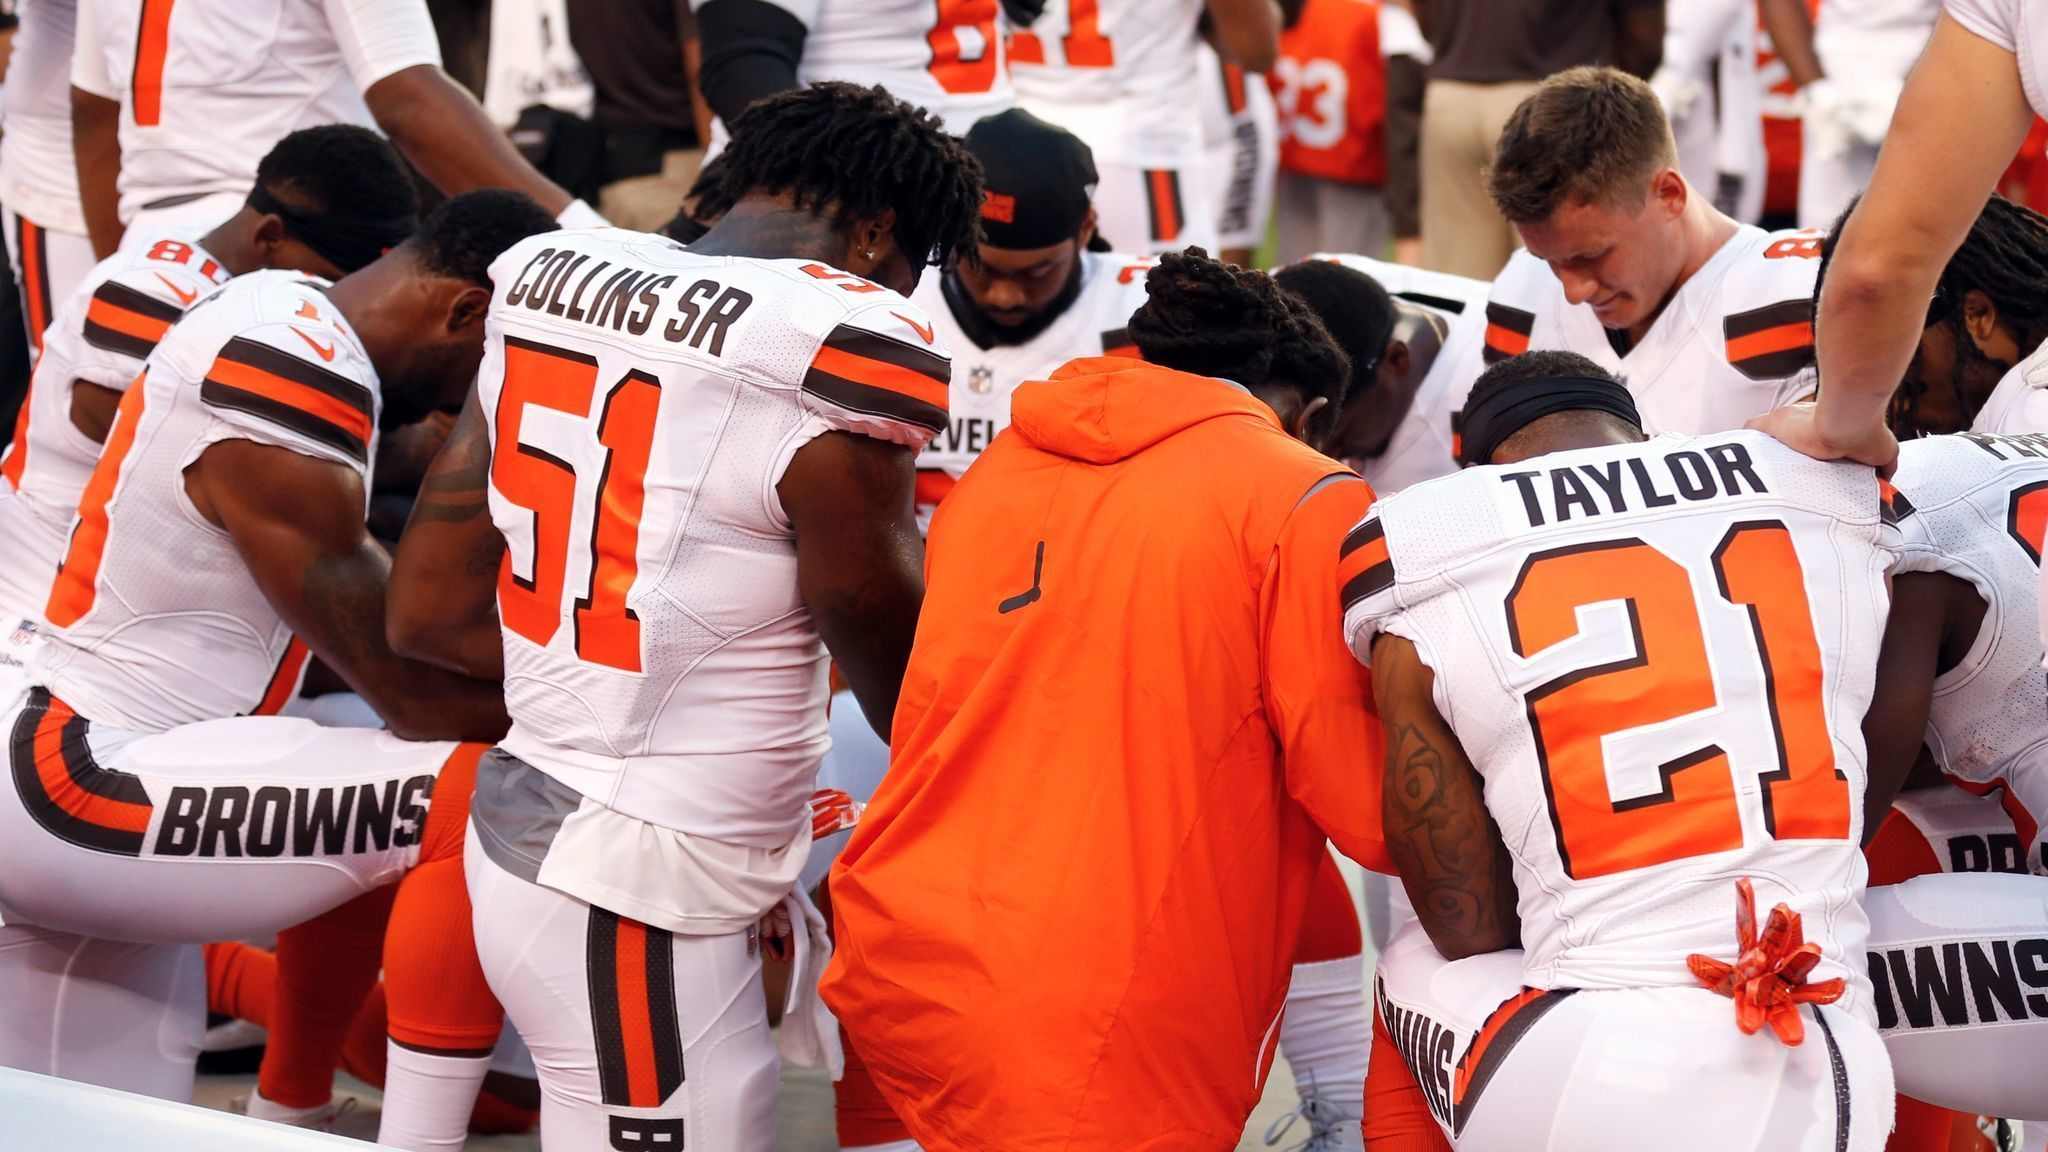 NFL notes: Cleveland's Seth DeValve is first white NFL player to kneel during national anthem